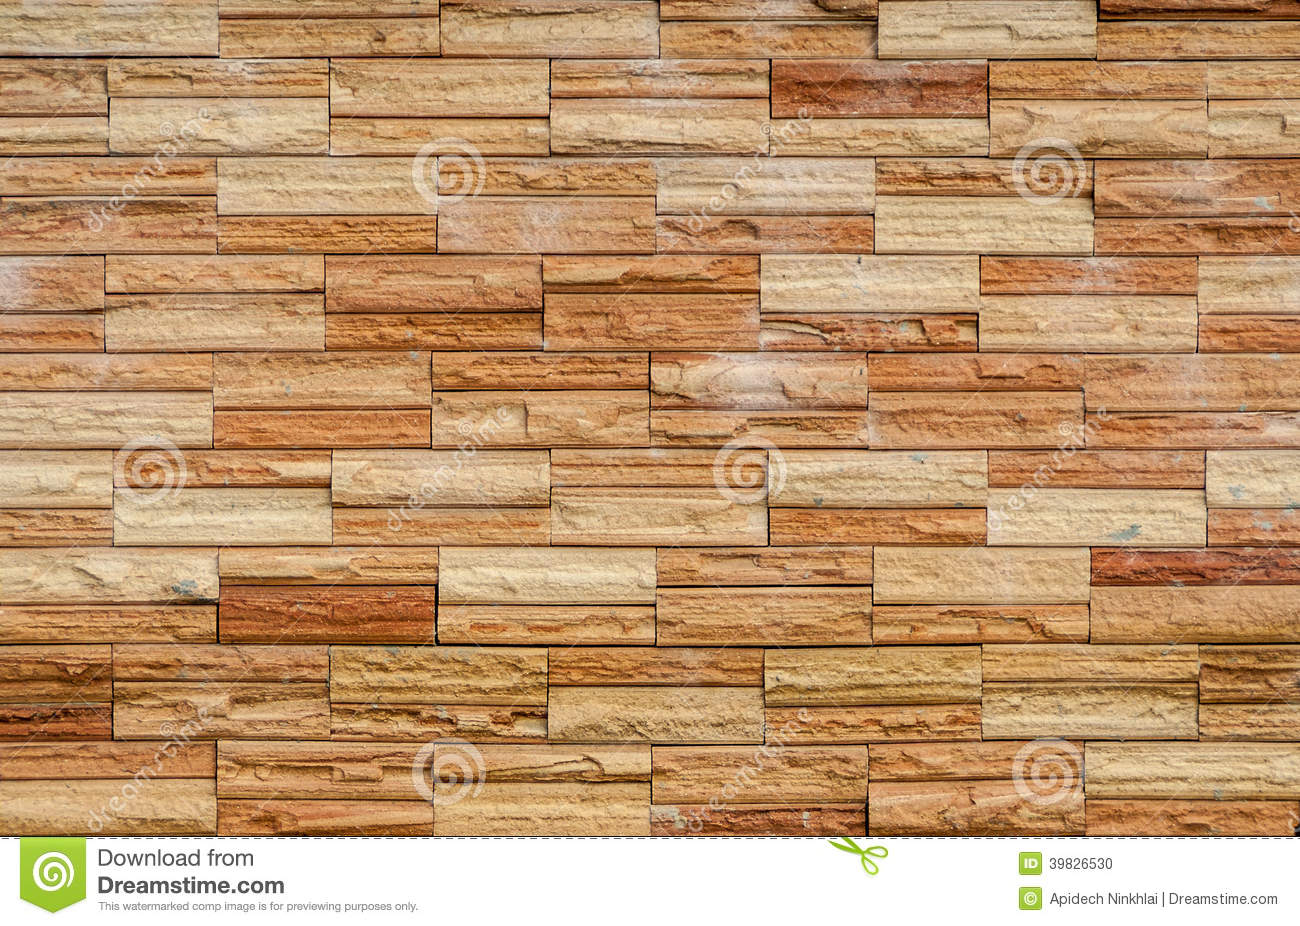 Uncategorized Modern Brick Walls the background and texture of modern brick wall stock photo wall